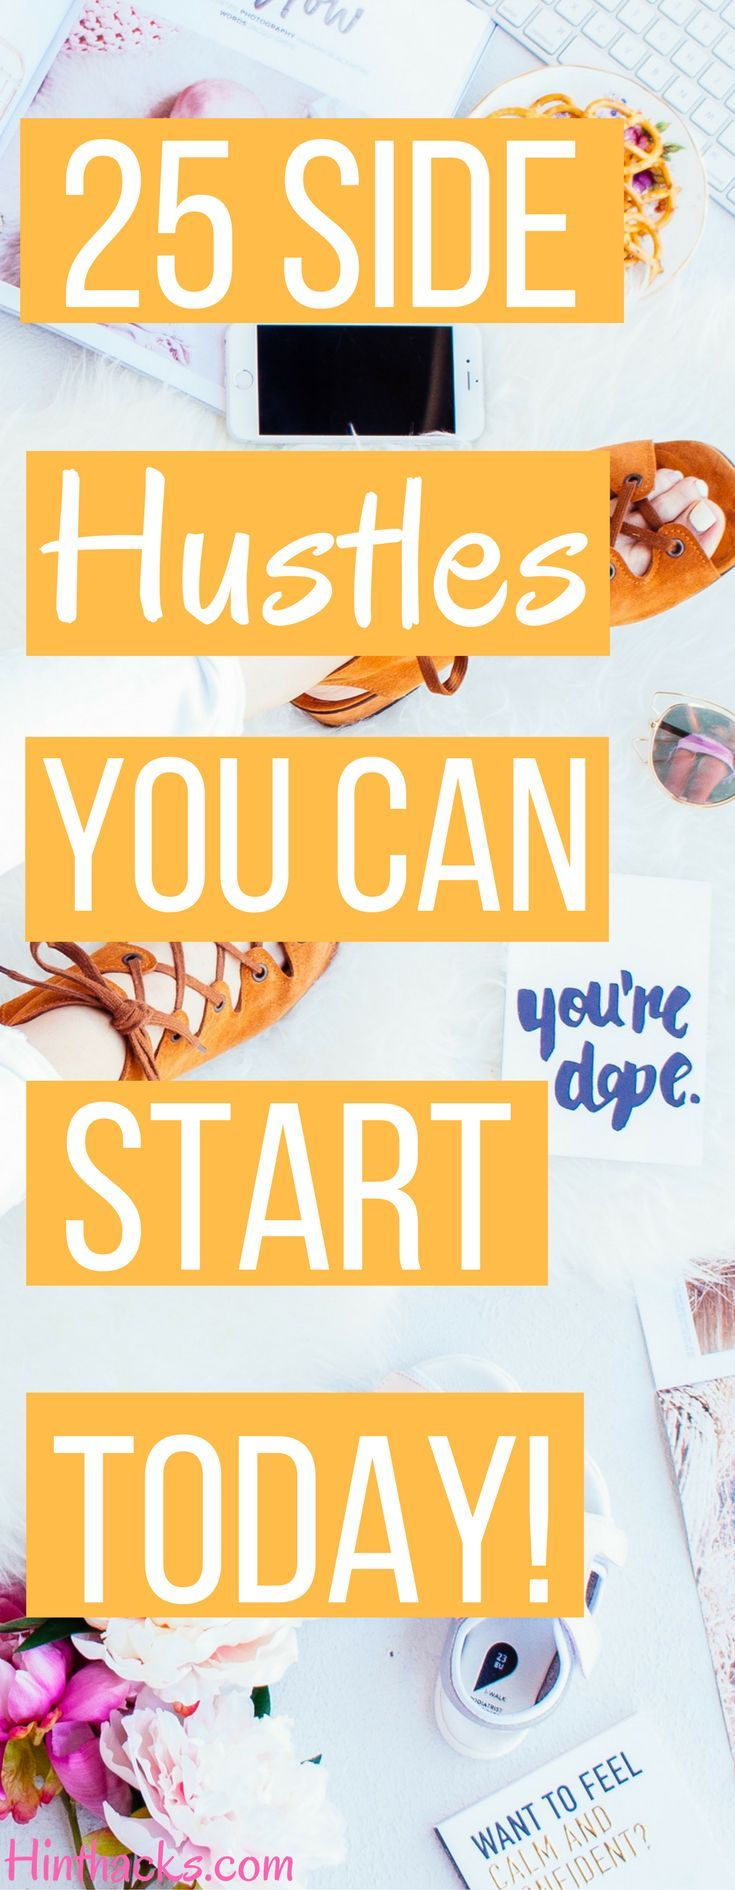 25 side hustle ideas you can start today | online business